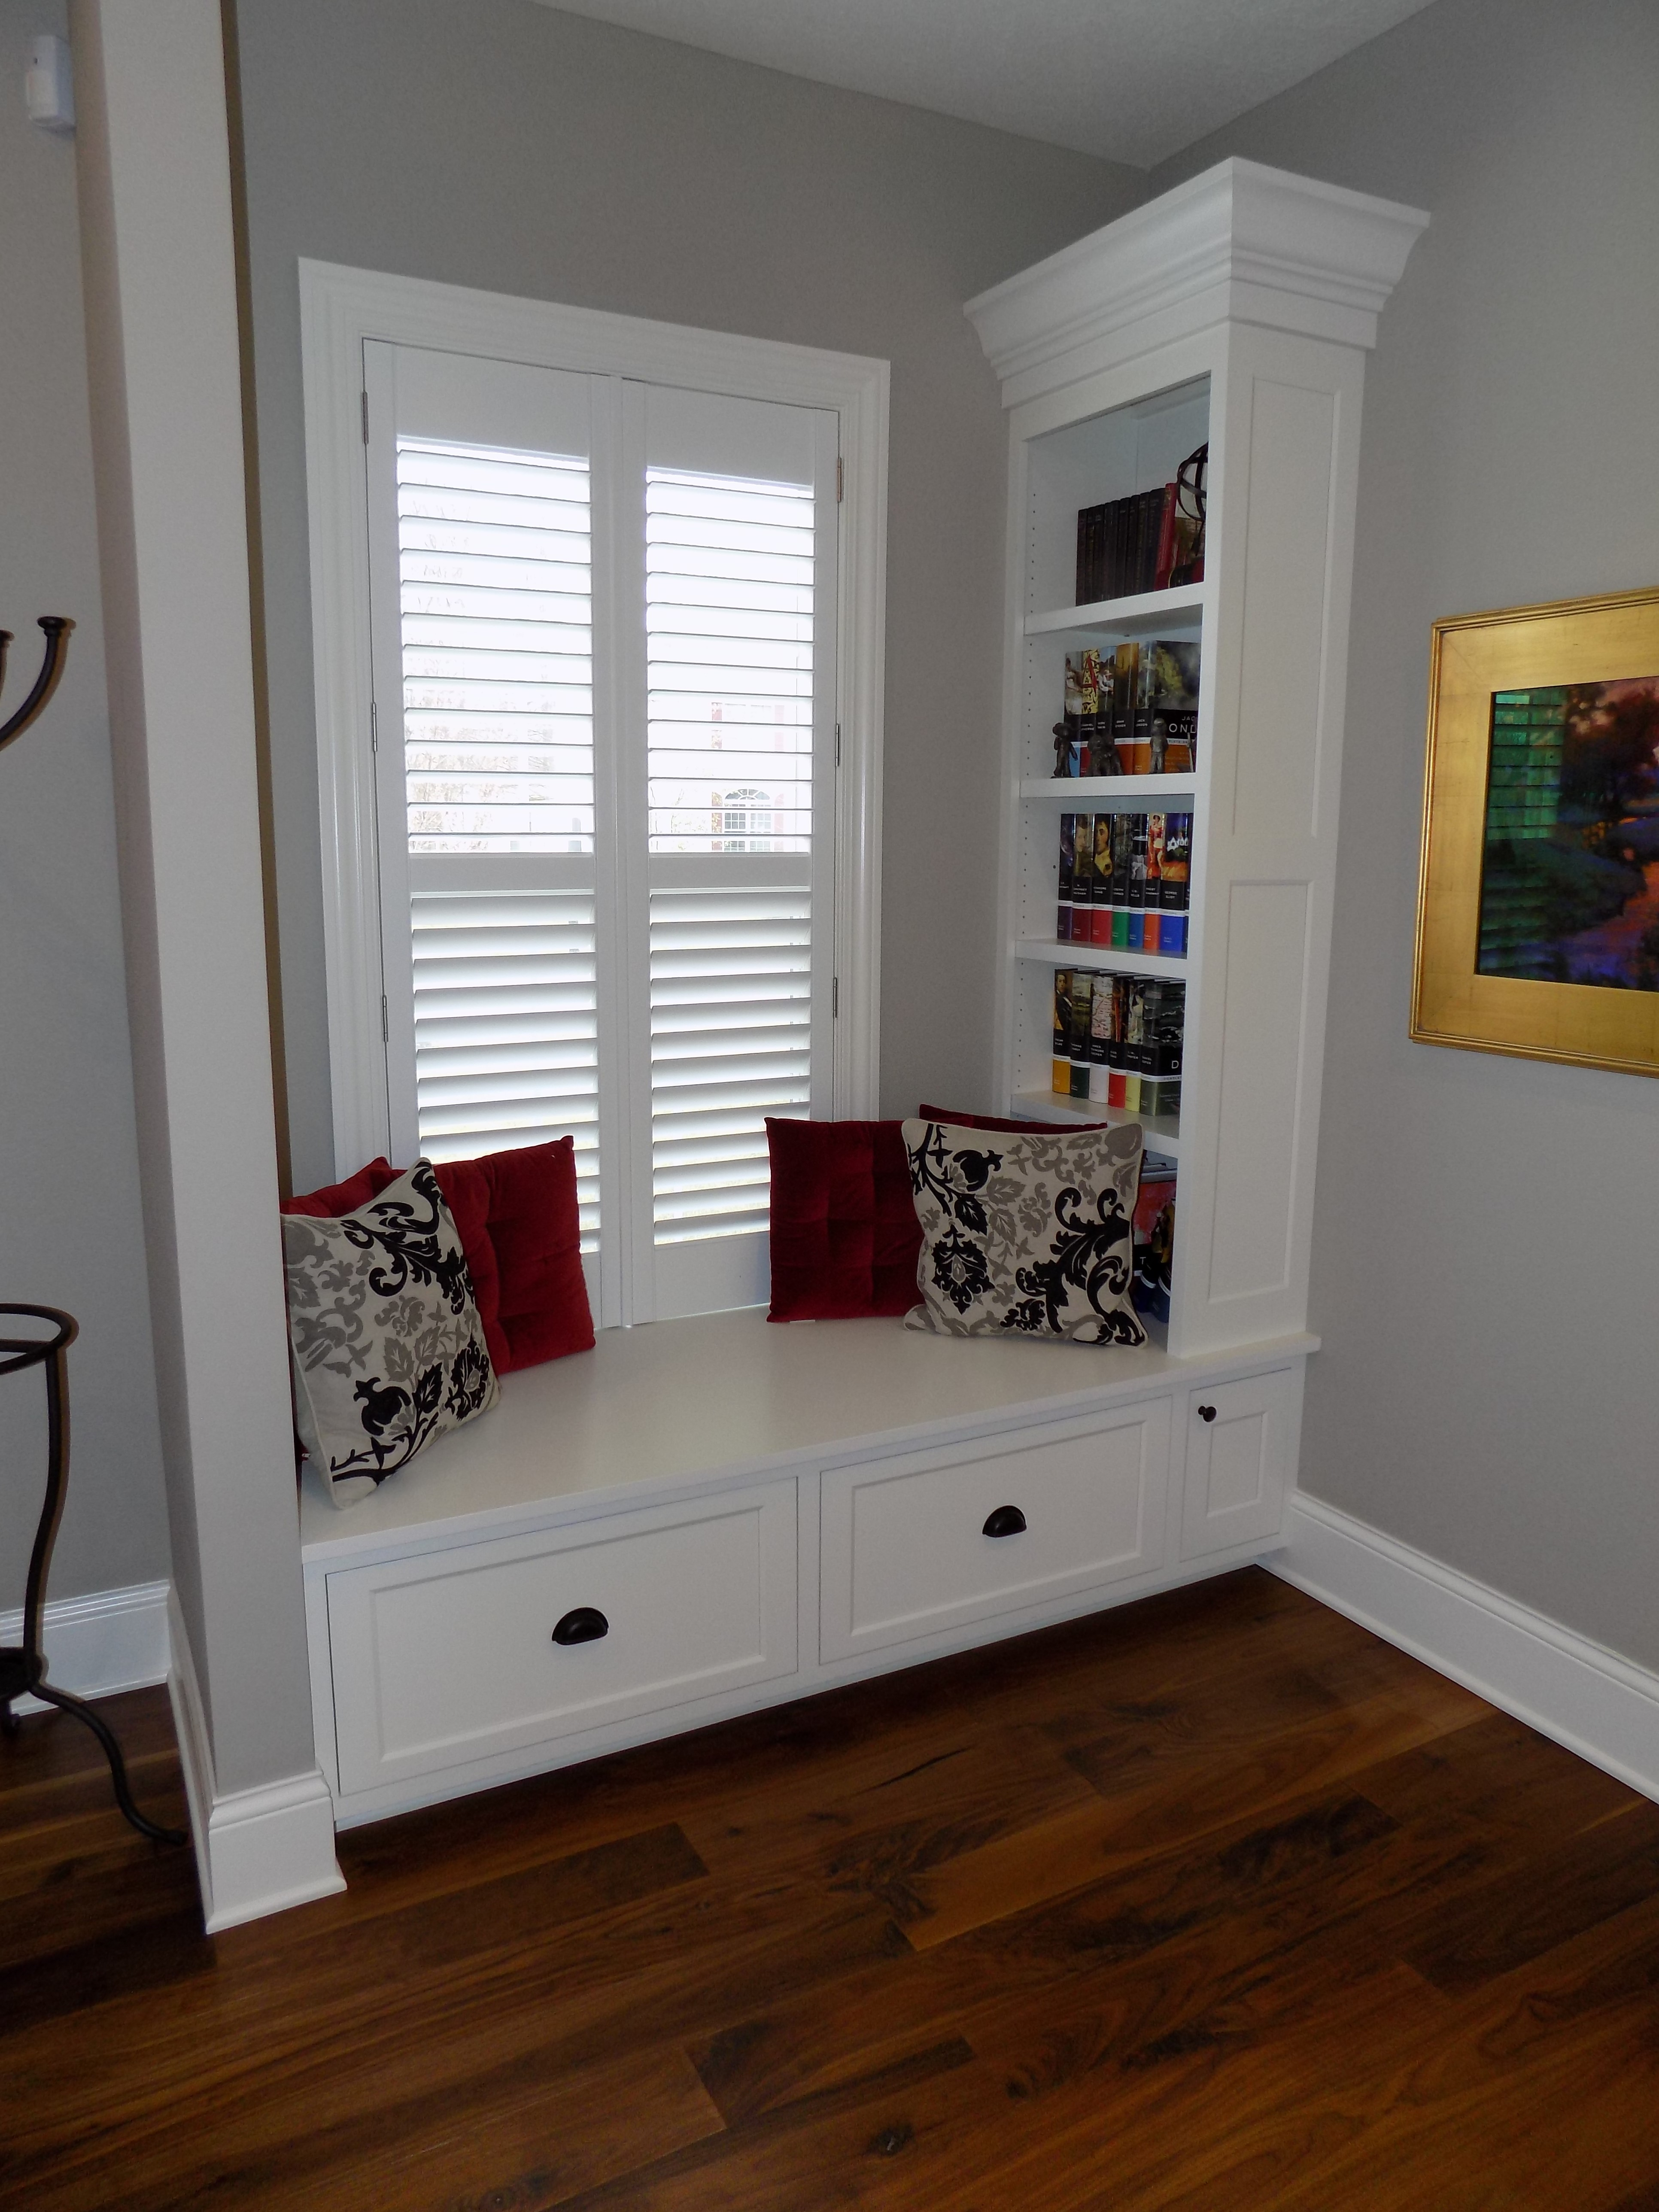 custom built-in bookshelf and window seat